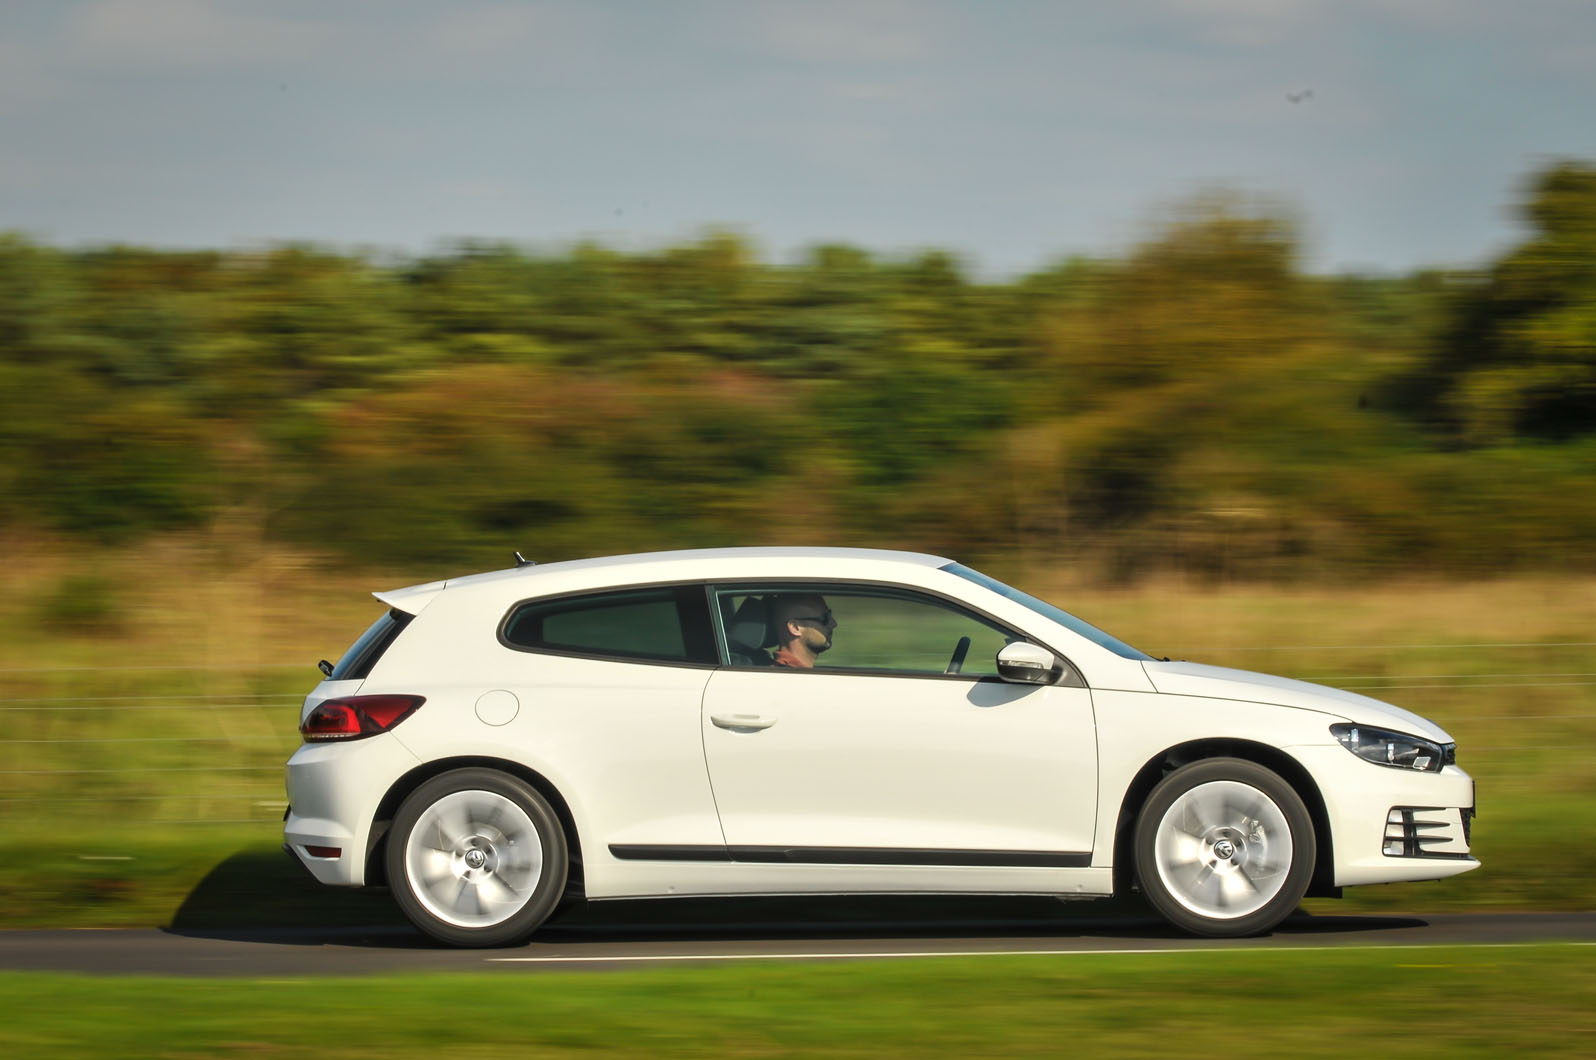 2014 volkswagen scirocco 1 4 tsi uk first drive review autocar. Black Bedroom Furniture Sets. Home Design Ideas